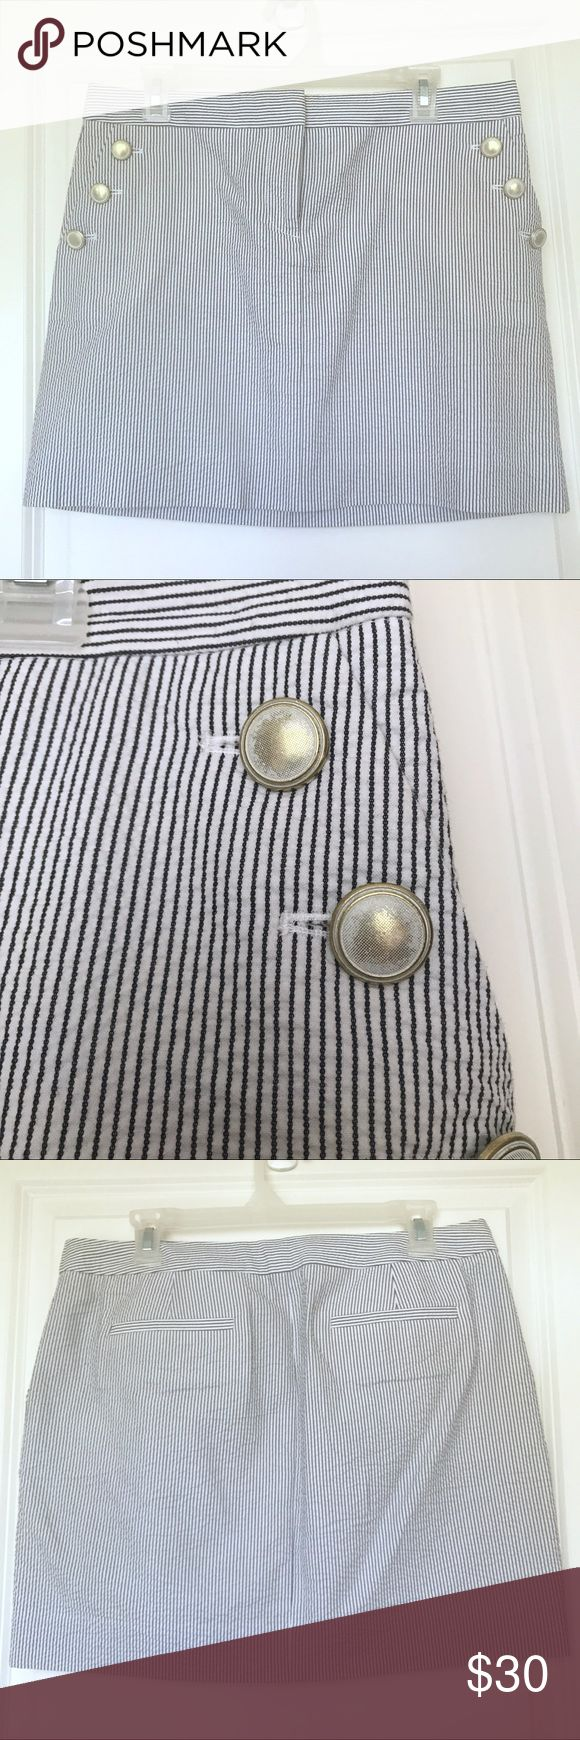 """J.Crew Striped Seersucker Skirt size 8 EUC J.Crew striped seersucker skirt size 8. 17"""" across waist. 15.5"""" long. Button tab front pockets and faux back pockets. 20% off bundles of 2+ items plus combined shipping! J. Crew Skirts"""